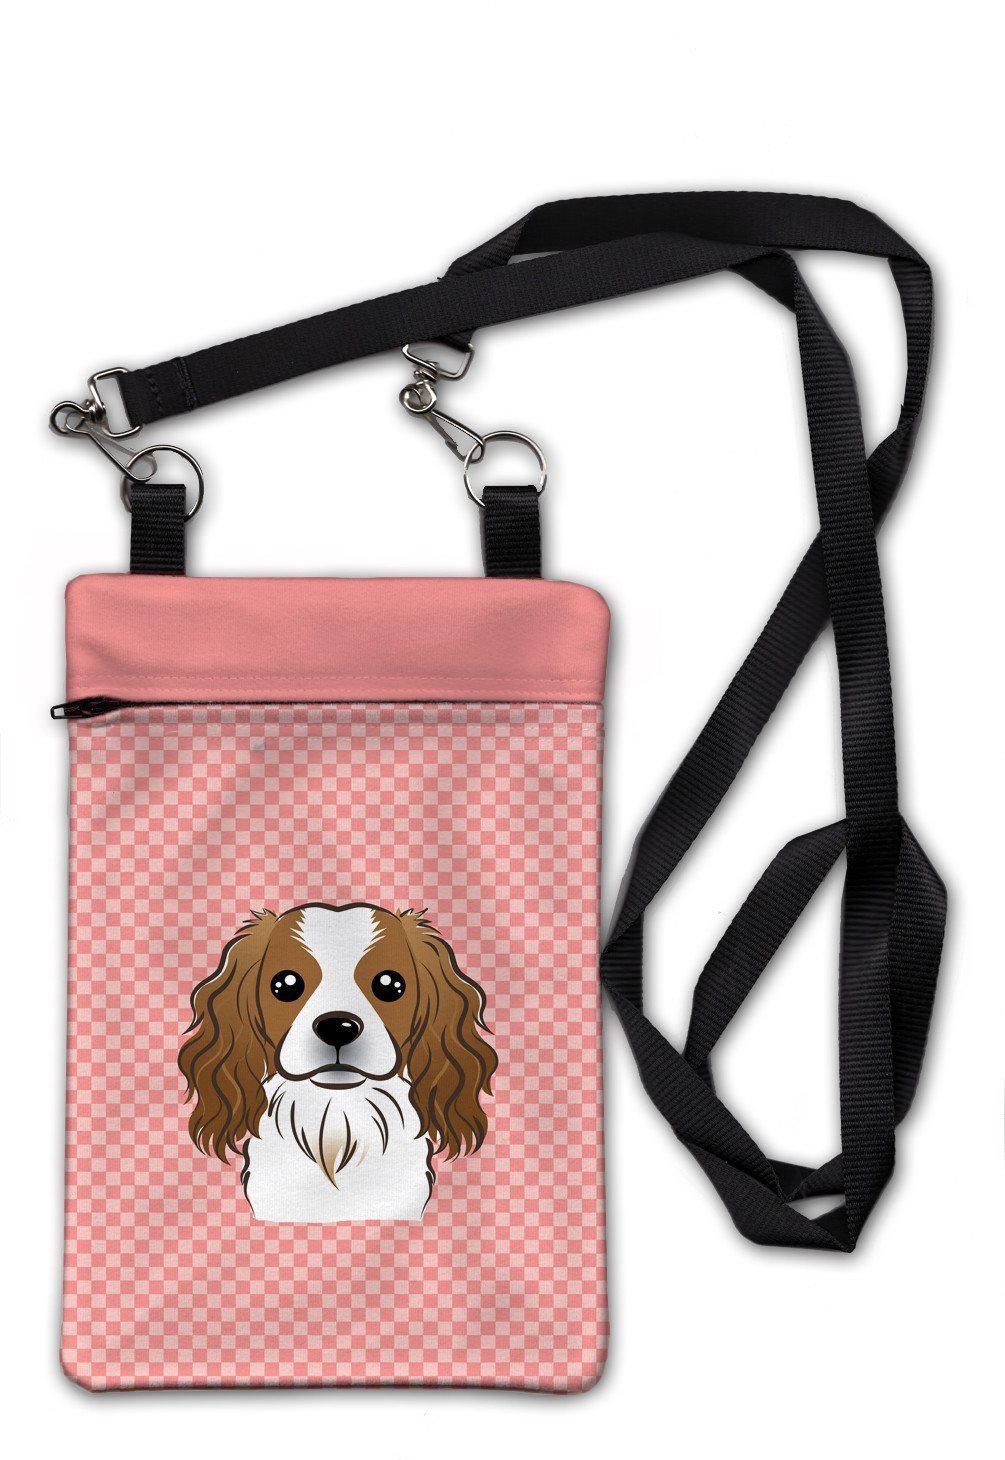 Checkerboard Pink Cavalier Spaniel Crossbody Bag Purse BB1224OBDY by Caroline's Treasures